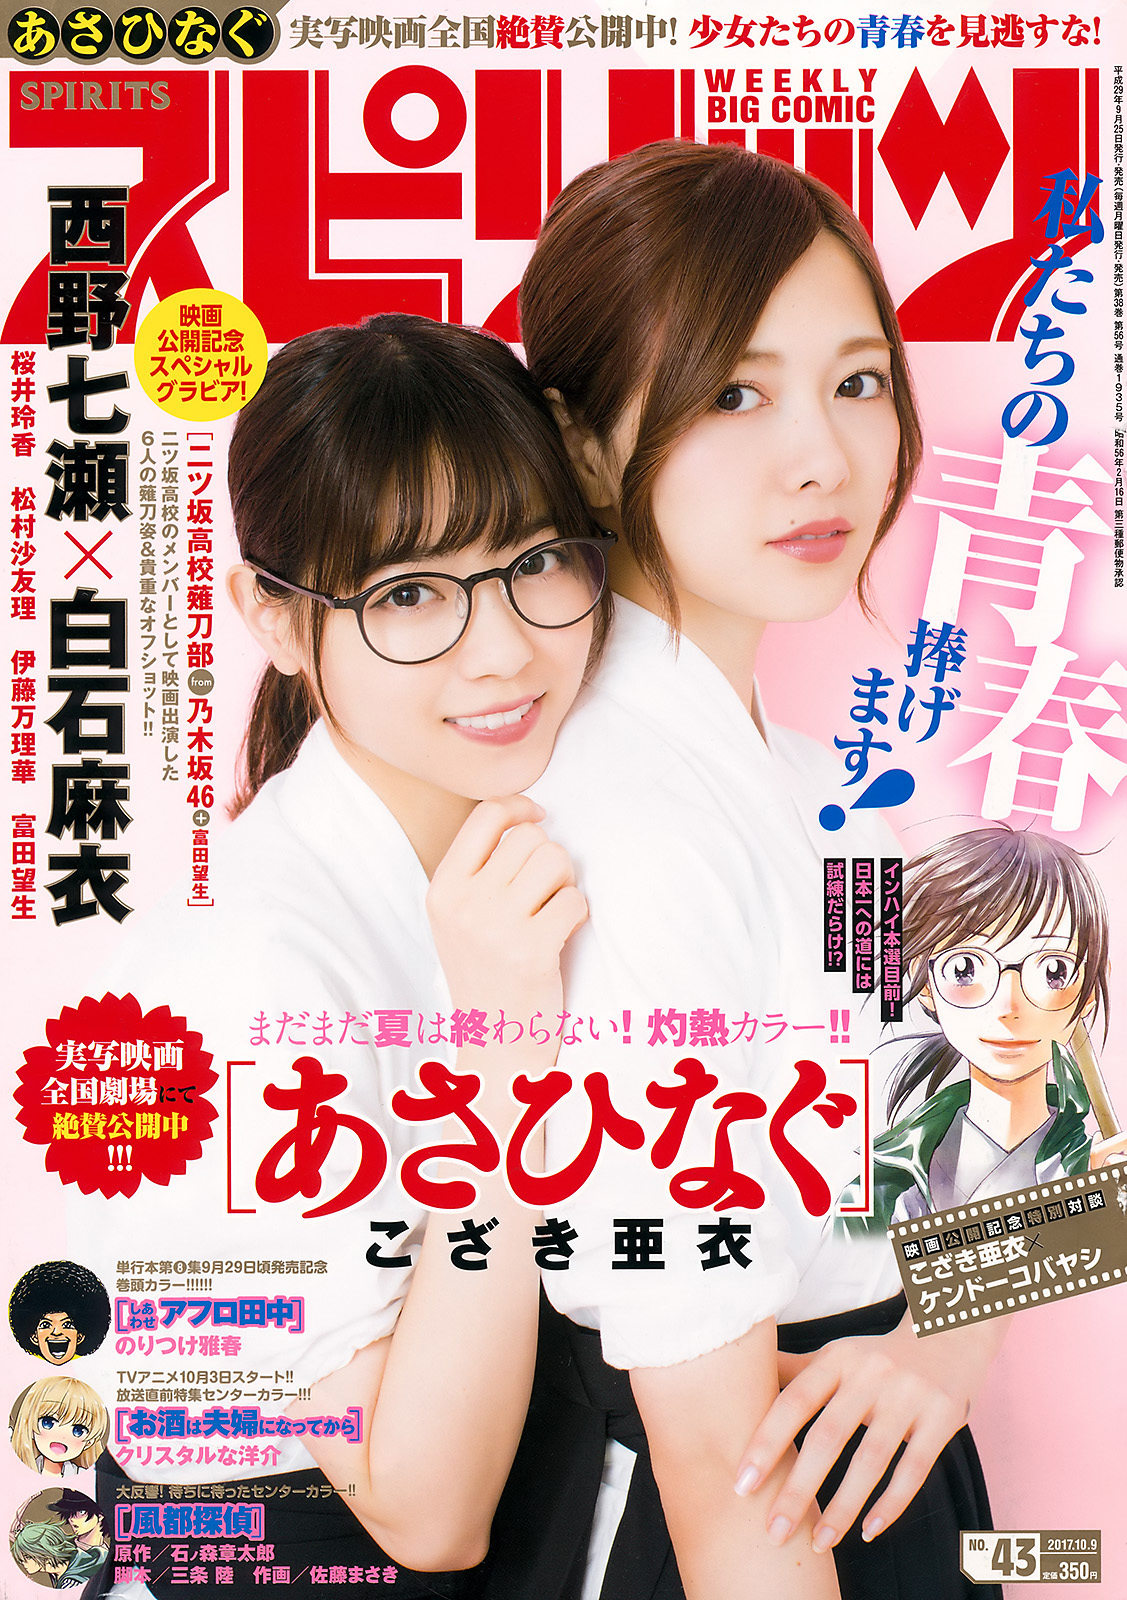 Nogizaka46, Big Comic Spirits 2017 No.43 (週刊スピリッツ 2017年43号)